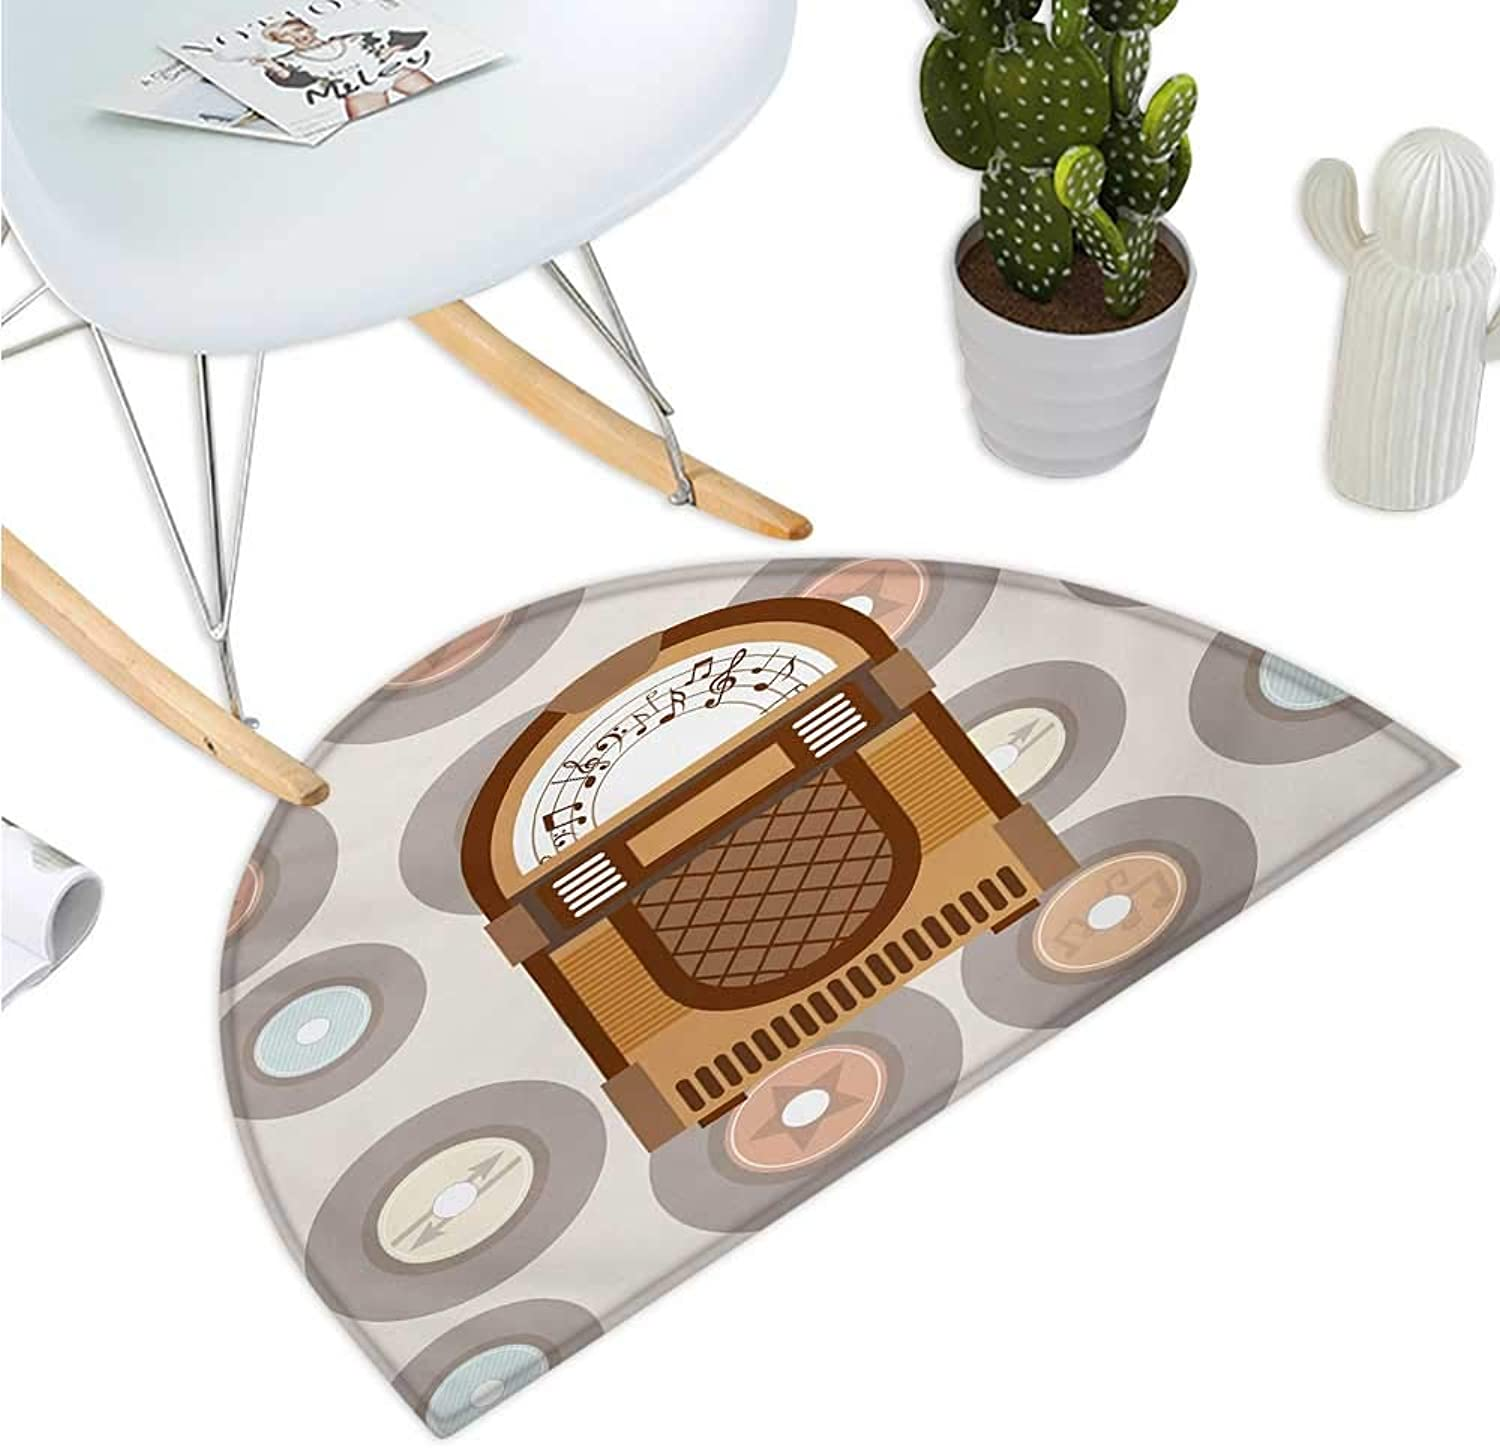 Jukebox Semicircle Doormat Pick Up Music with Vintage Abstract Long Players Backdrop Halfmoon doormats H 43.3  xD 64.9  Brown Pale Coffee Grey and Peach